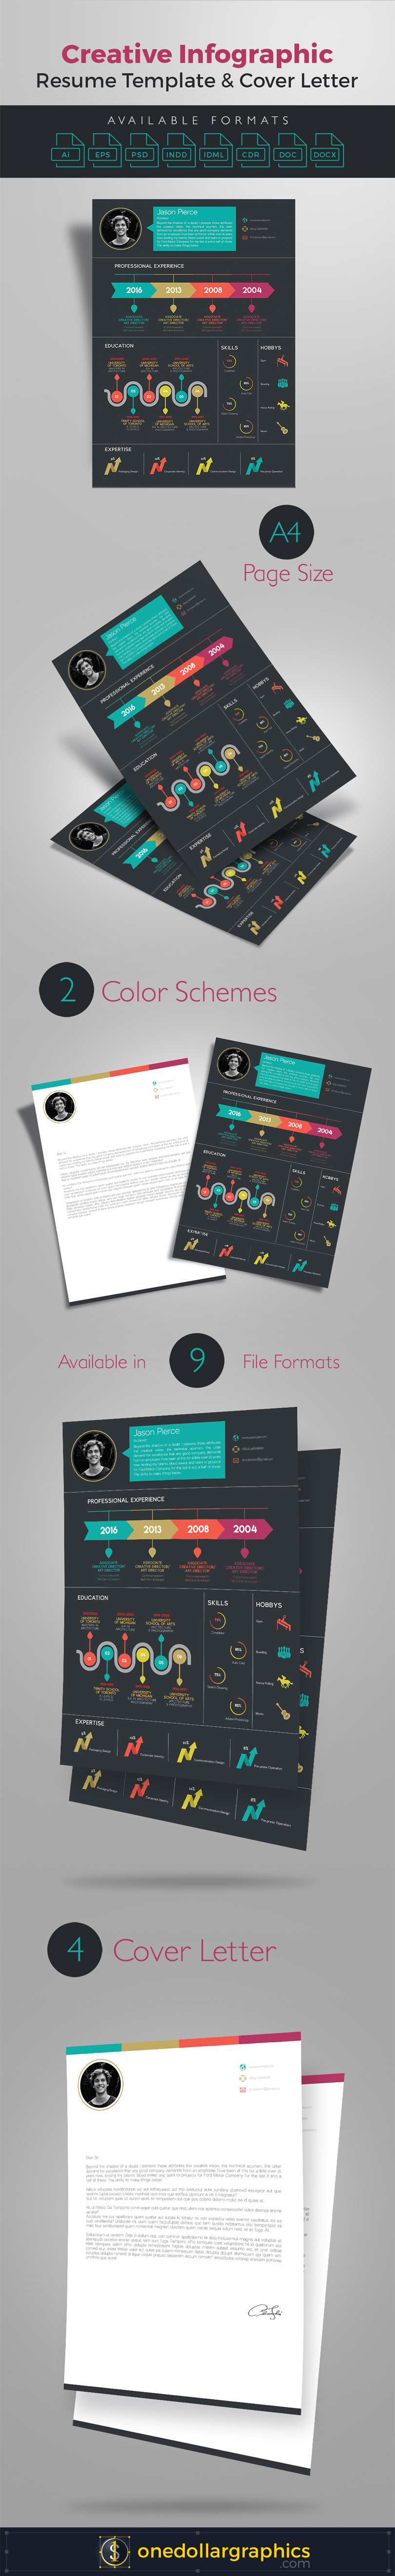 Creative-Infographic-Resume-Template-with-Cover-Letter